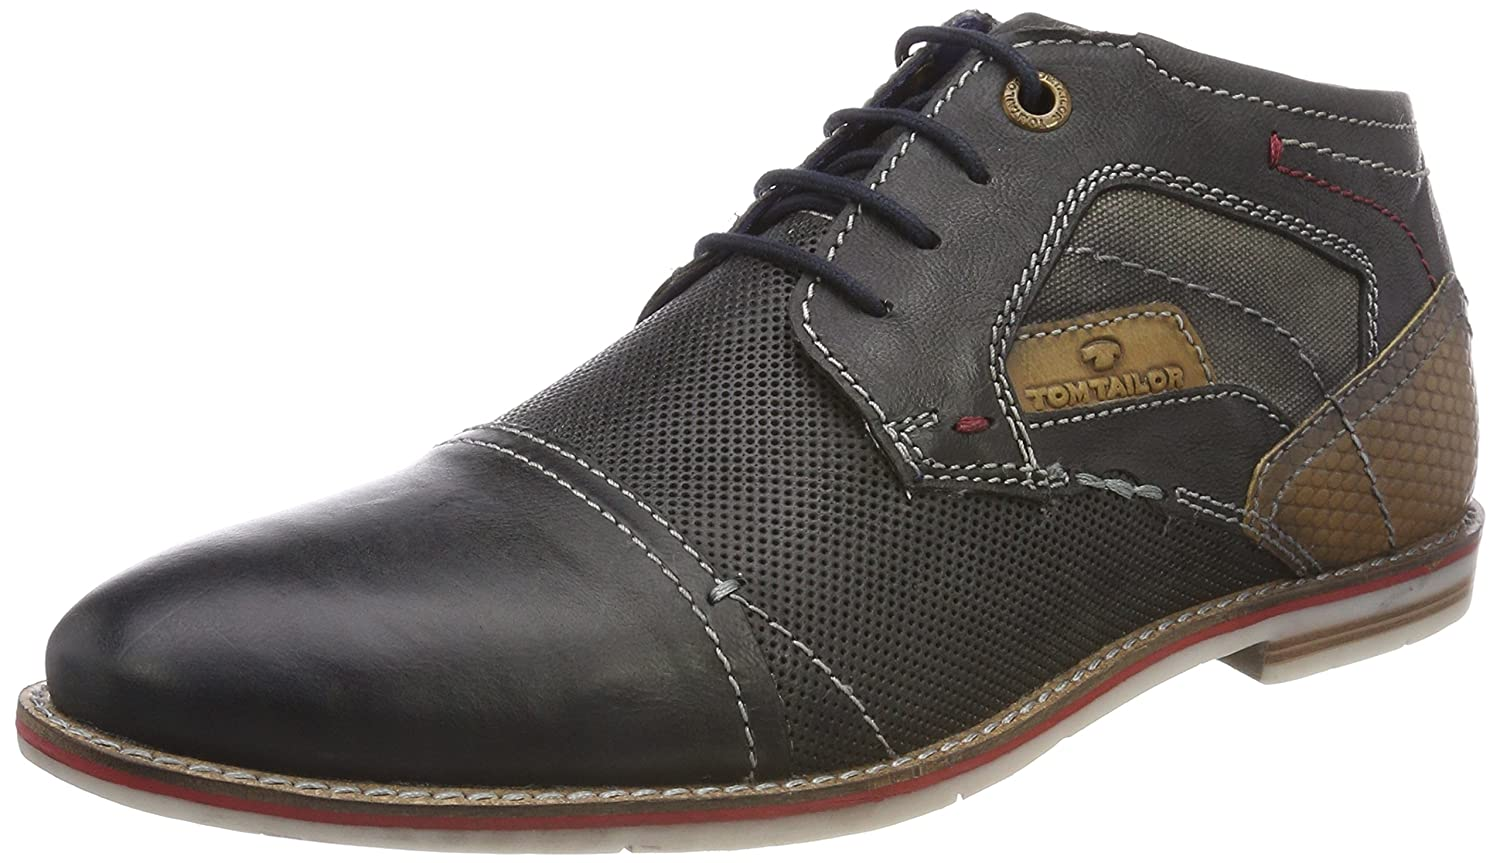 TOM TAILOR 4889005 - Botines Hombre